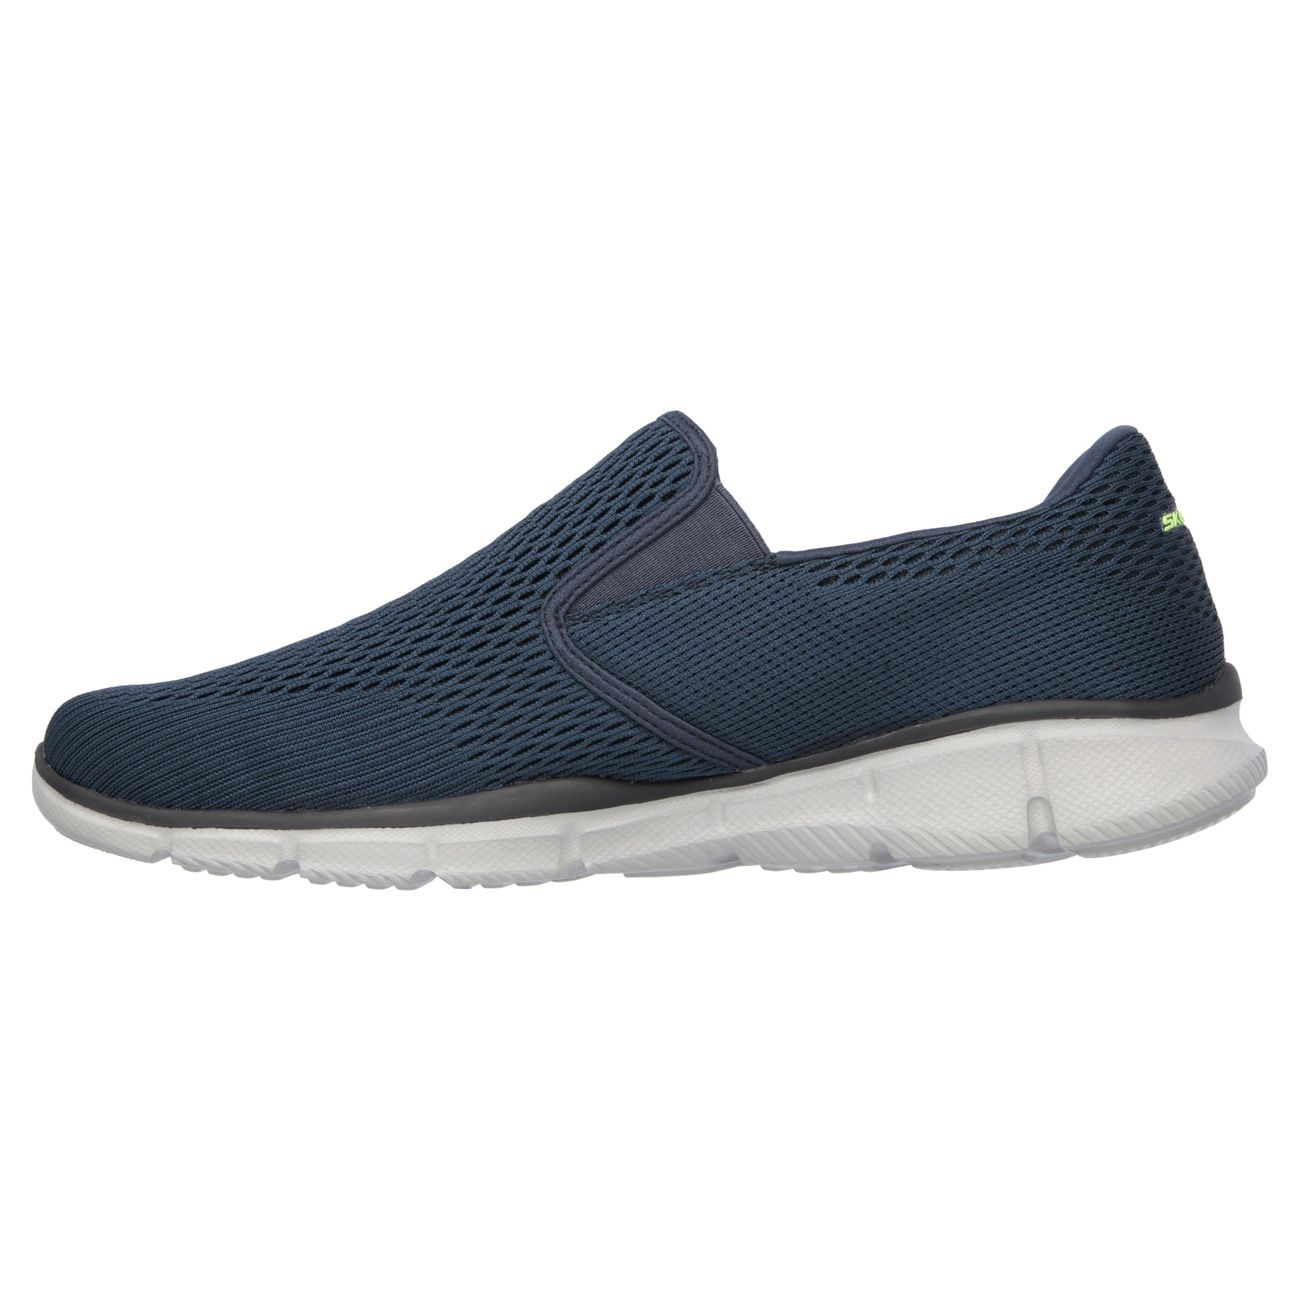 skechers equalizer play mens walking shoes aw16